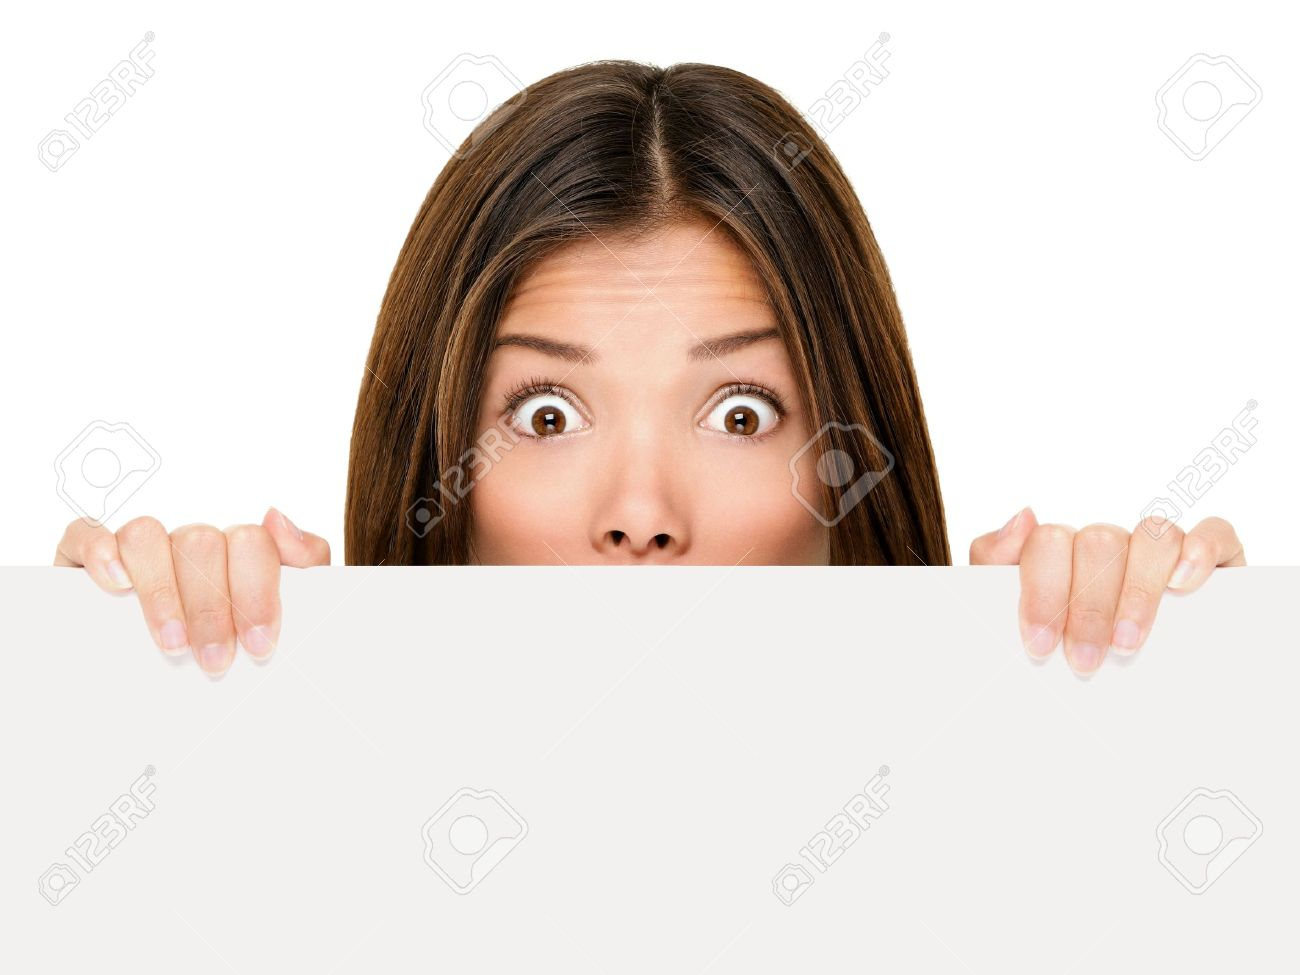 Banner sign woman peeking over edge of blank empty paper billboard with copy space for text. Beautiful Asian Caucasian woman looking surprised and scared - funny. Isolated on white background. Stock Photo - 10437892